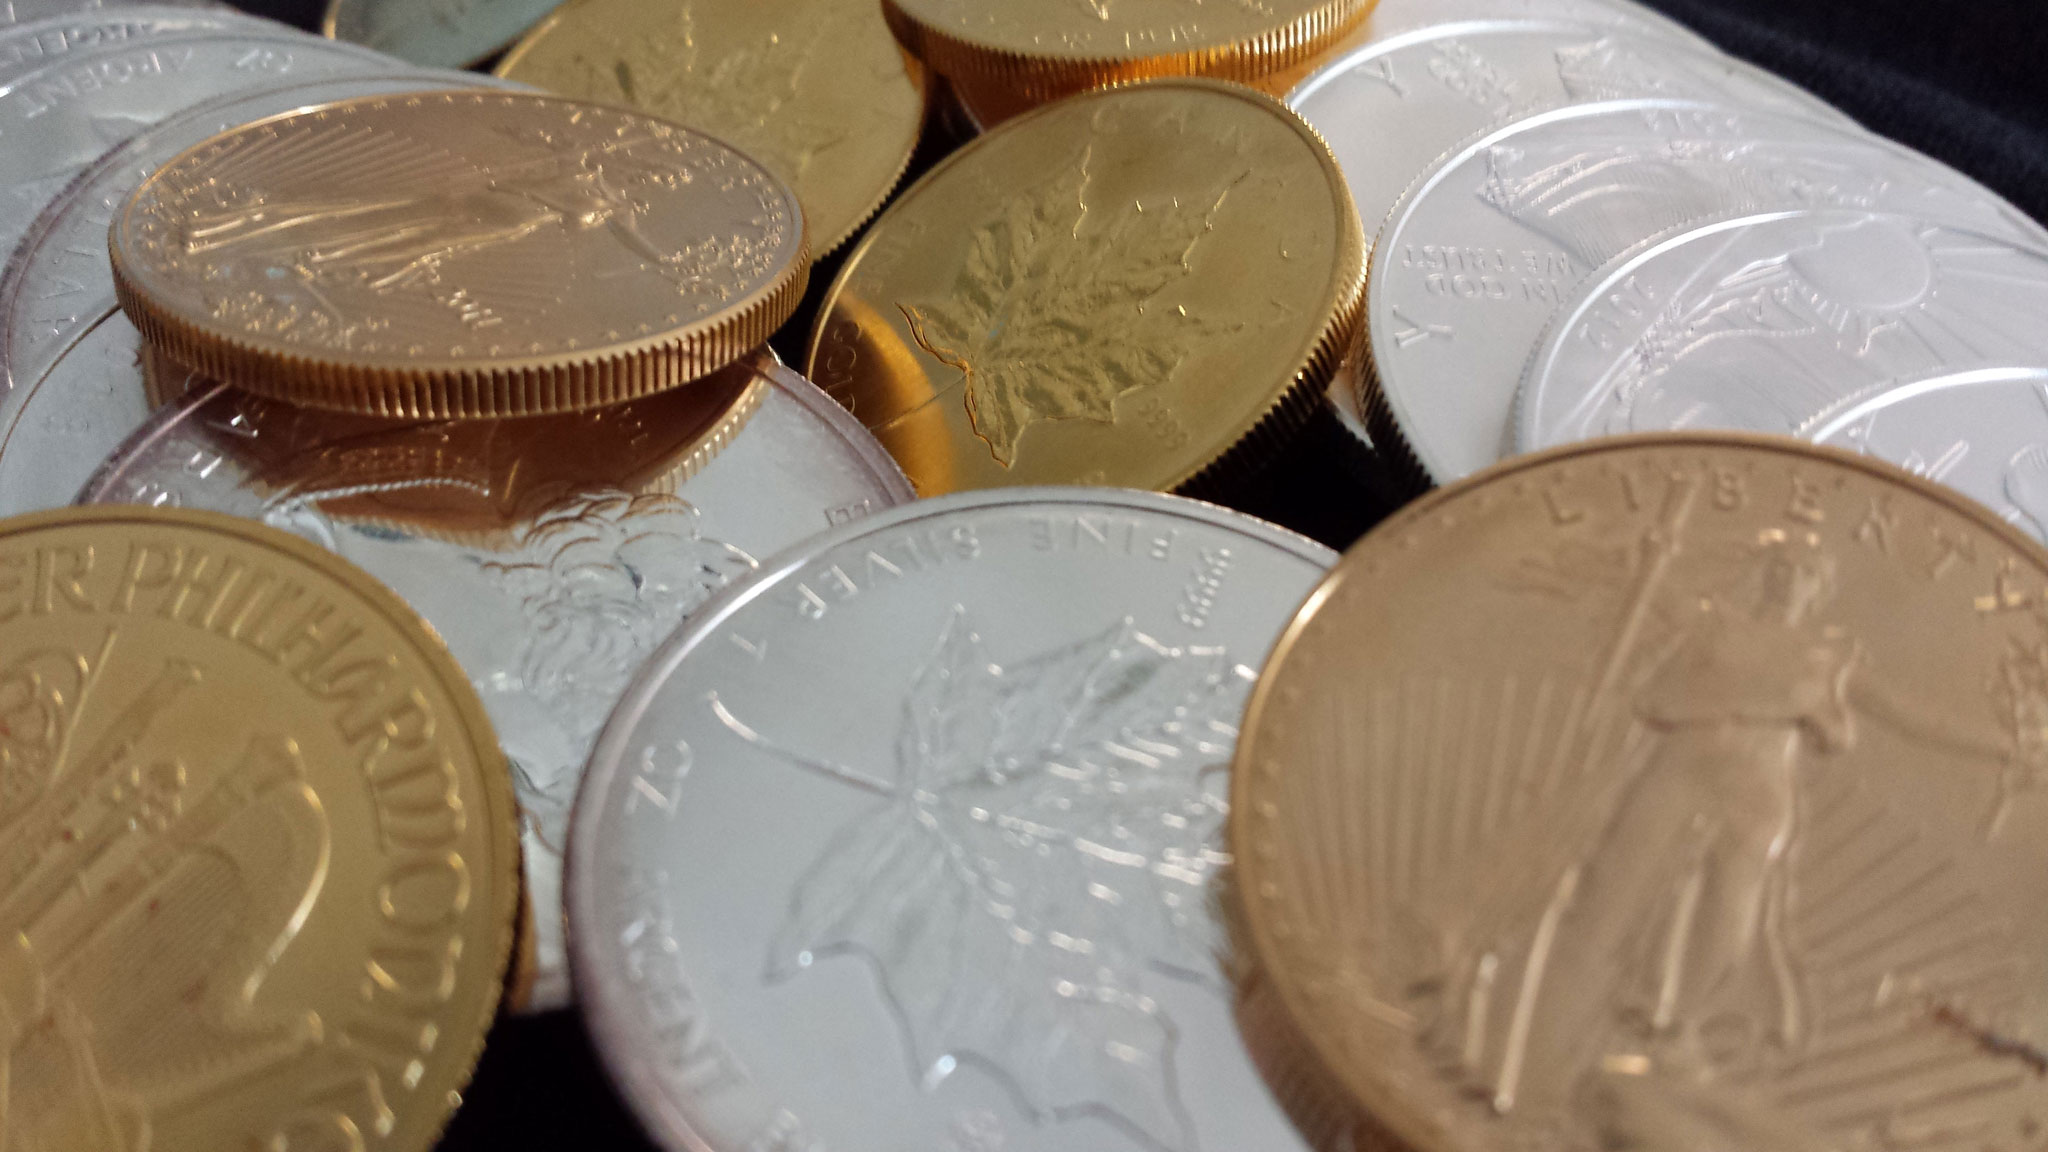 We sell pure silver, gold and silver coins, bullion and ...